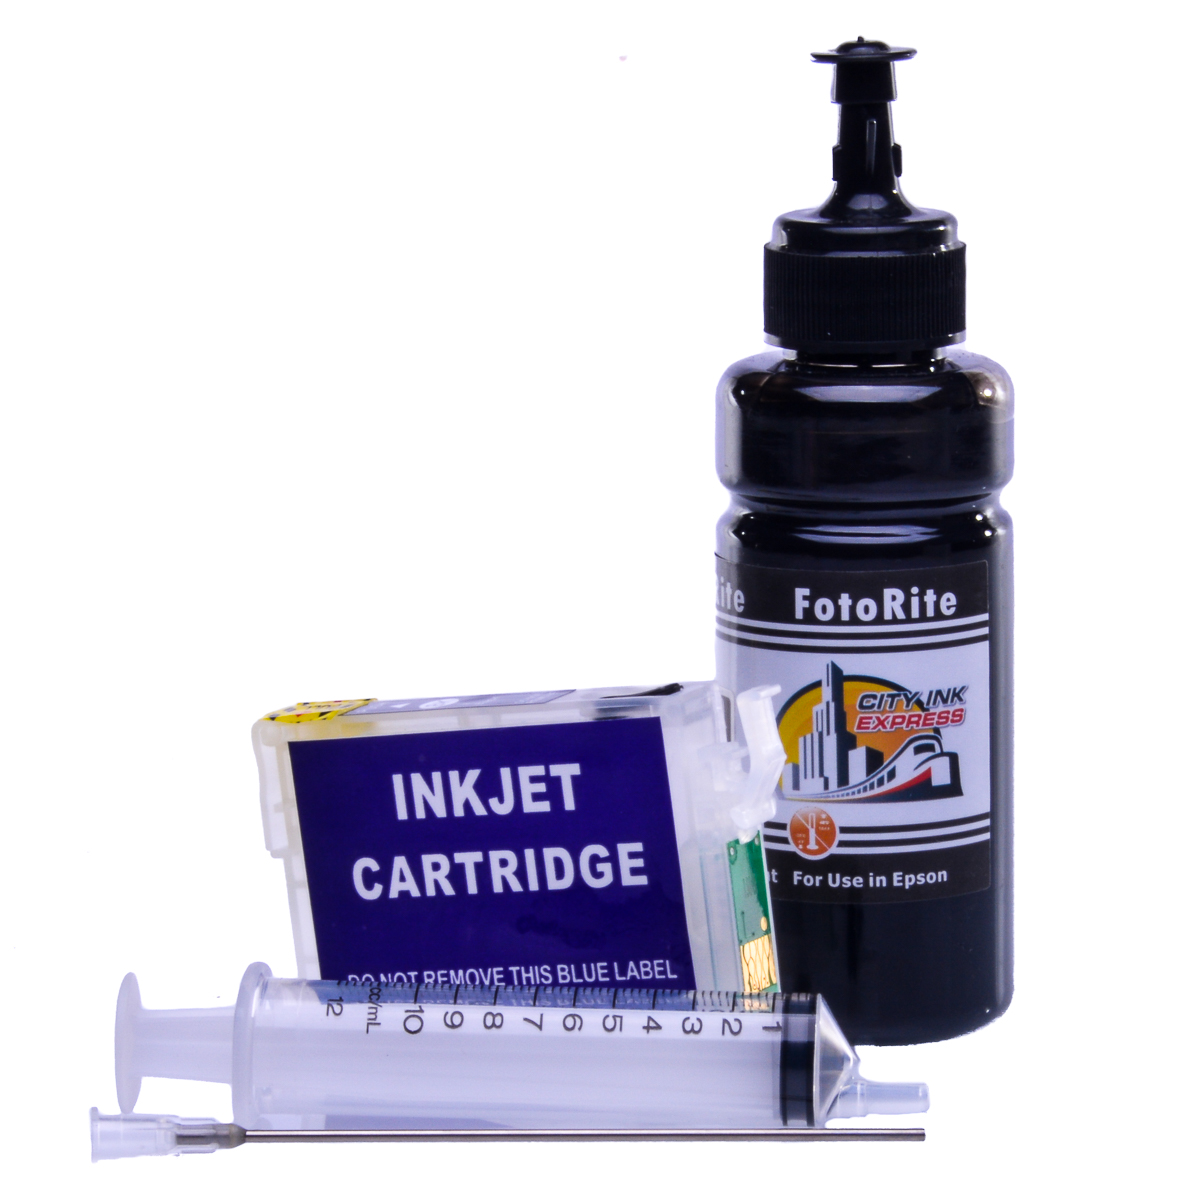 Refillable pigment Cheap printer cartridges for Epson XP-352 C13T29814010 T2981 Black